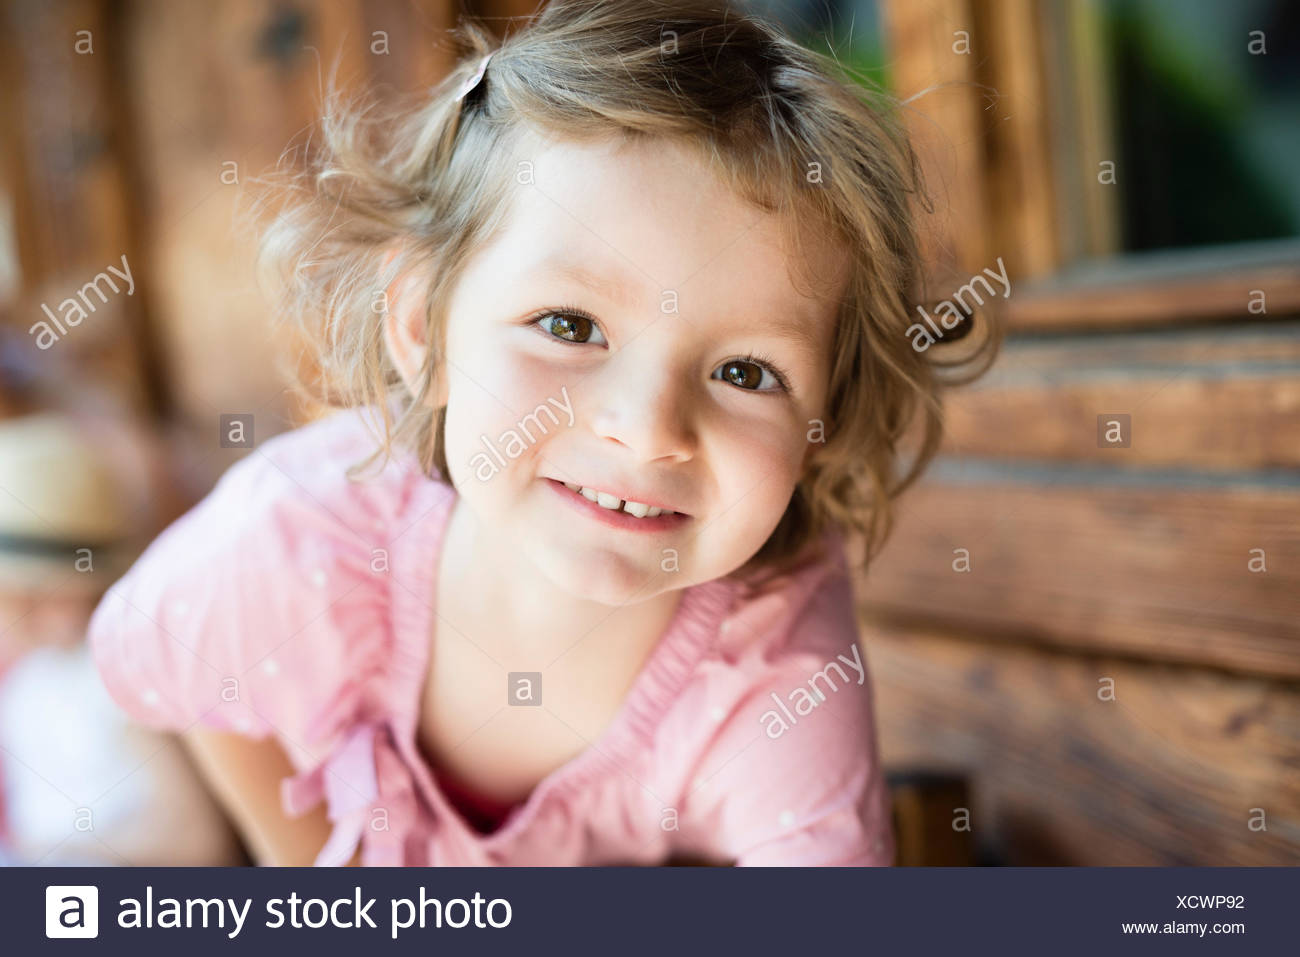 Portrait of little girl with blond hair - Stock Image